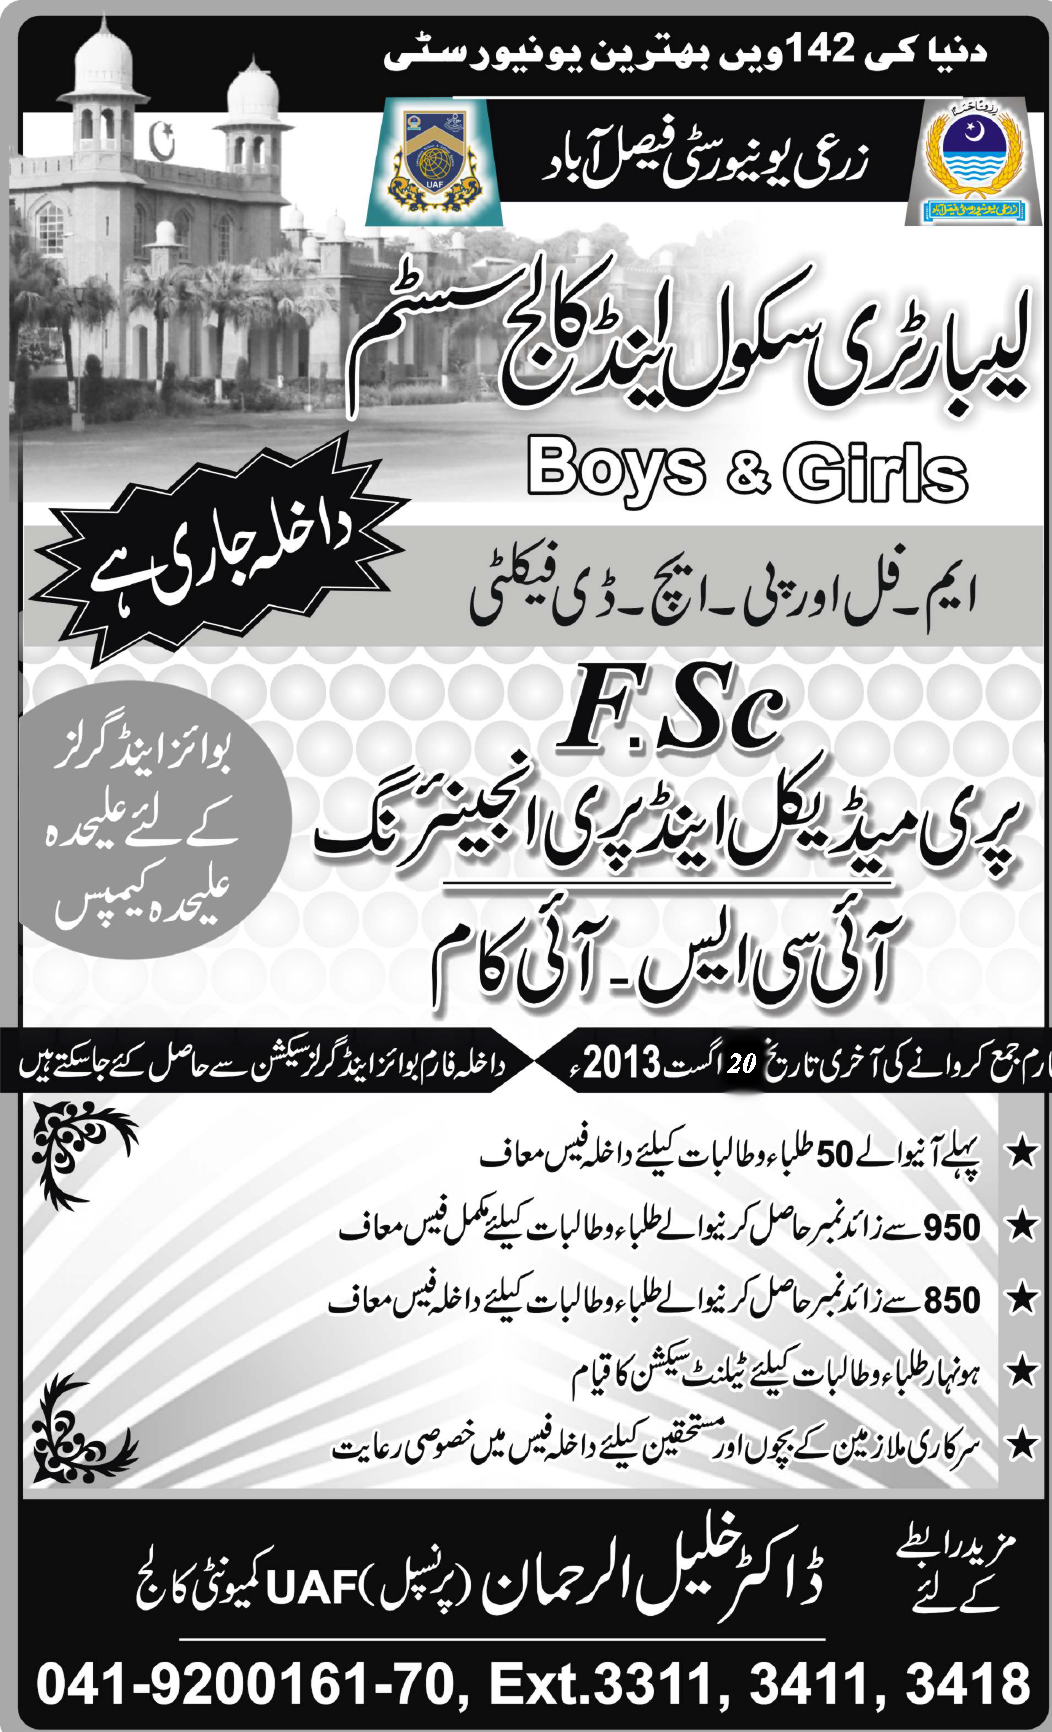 University of Agriculture Faisalabad Intermediate Admission 2013